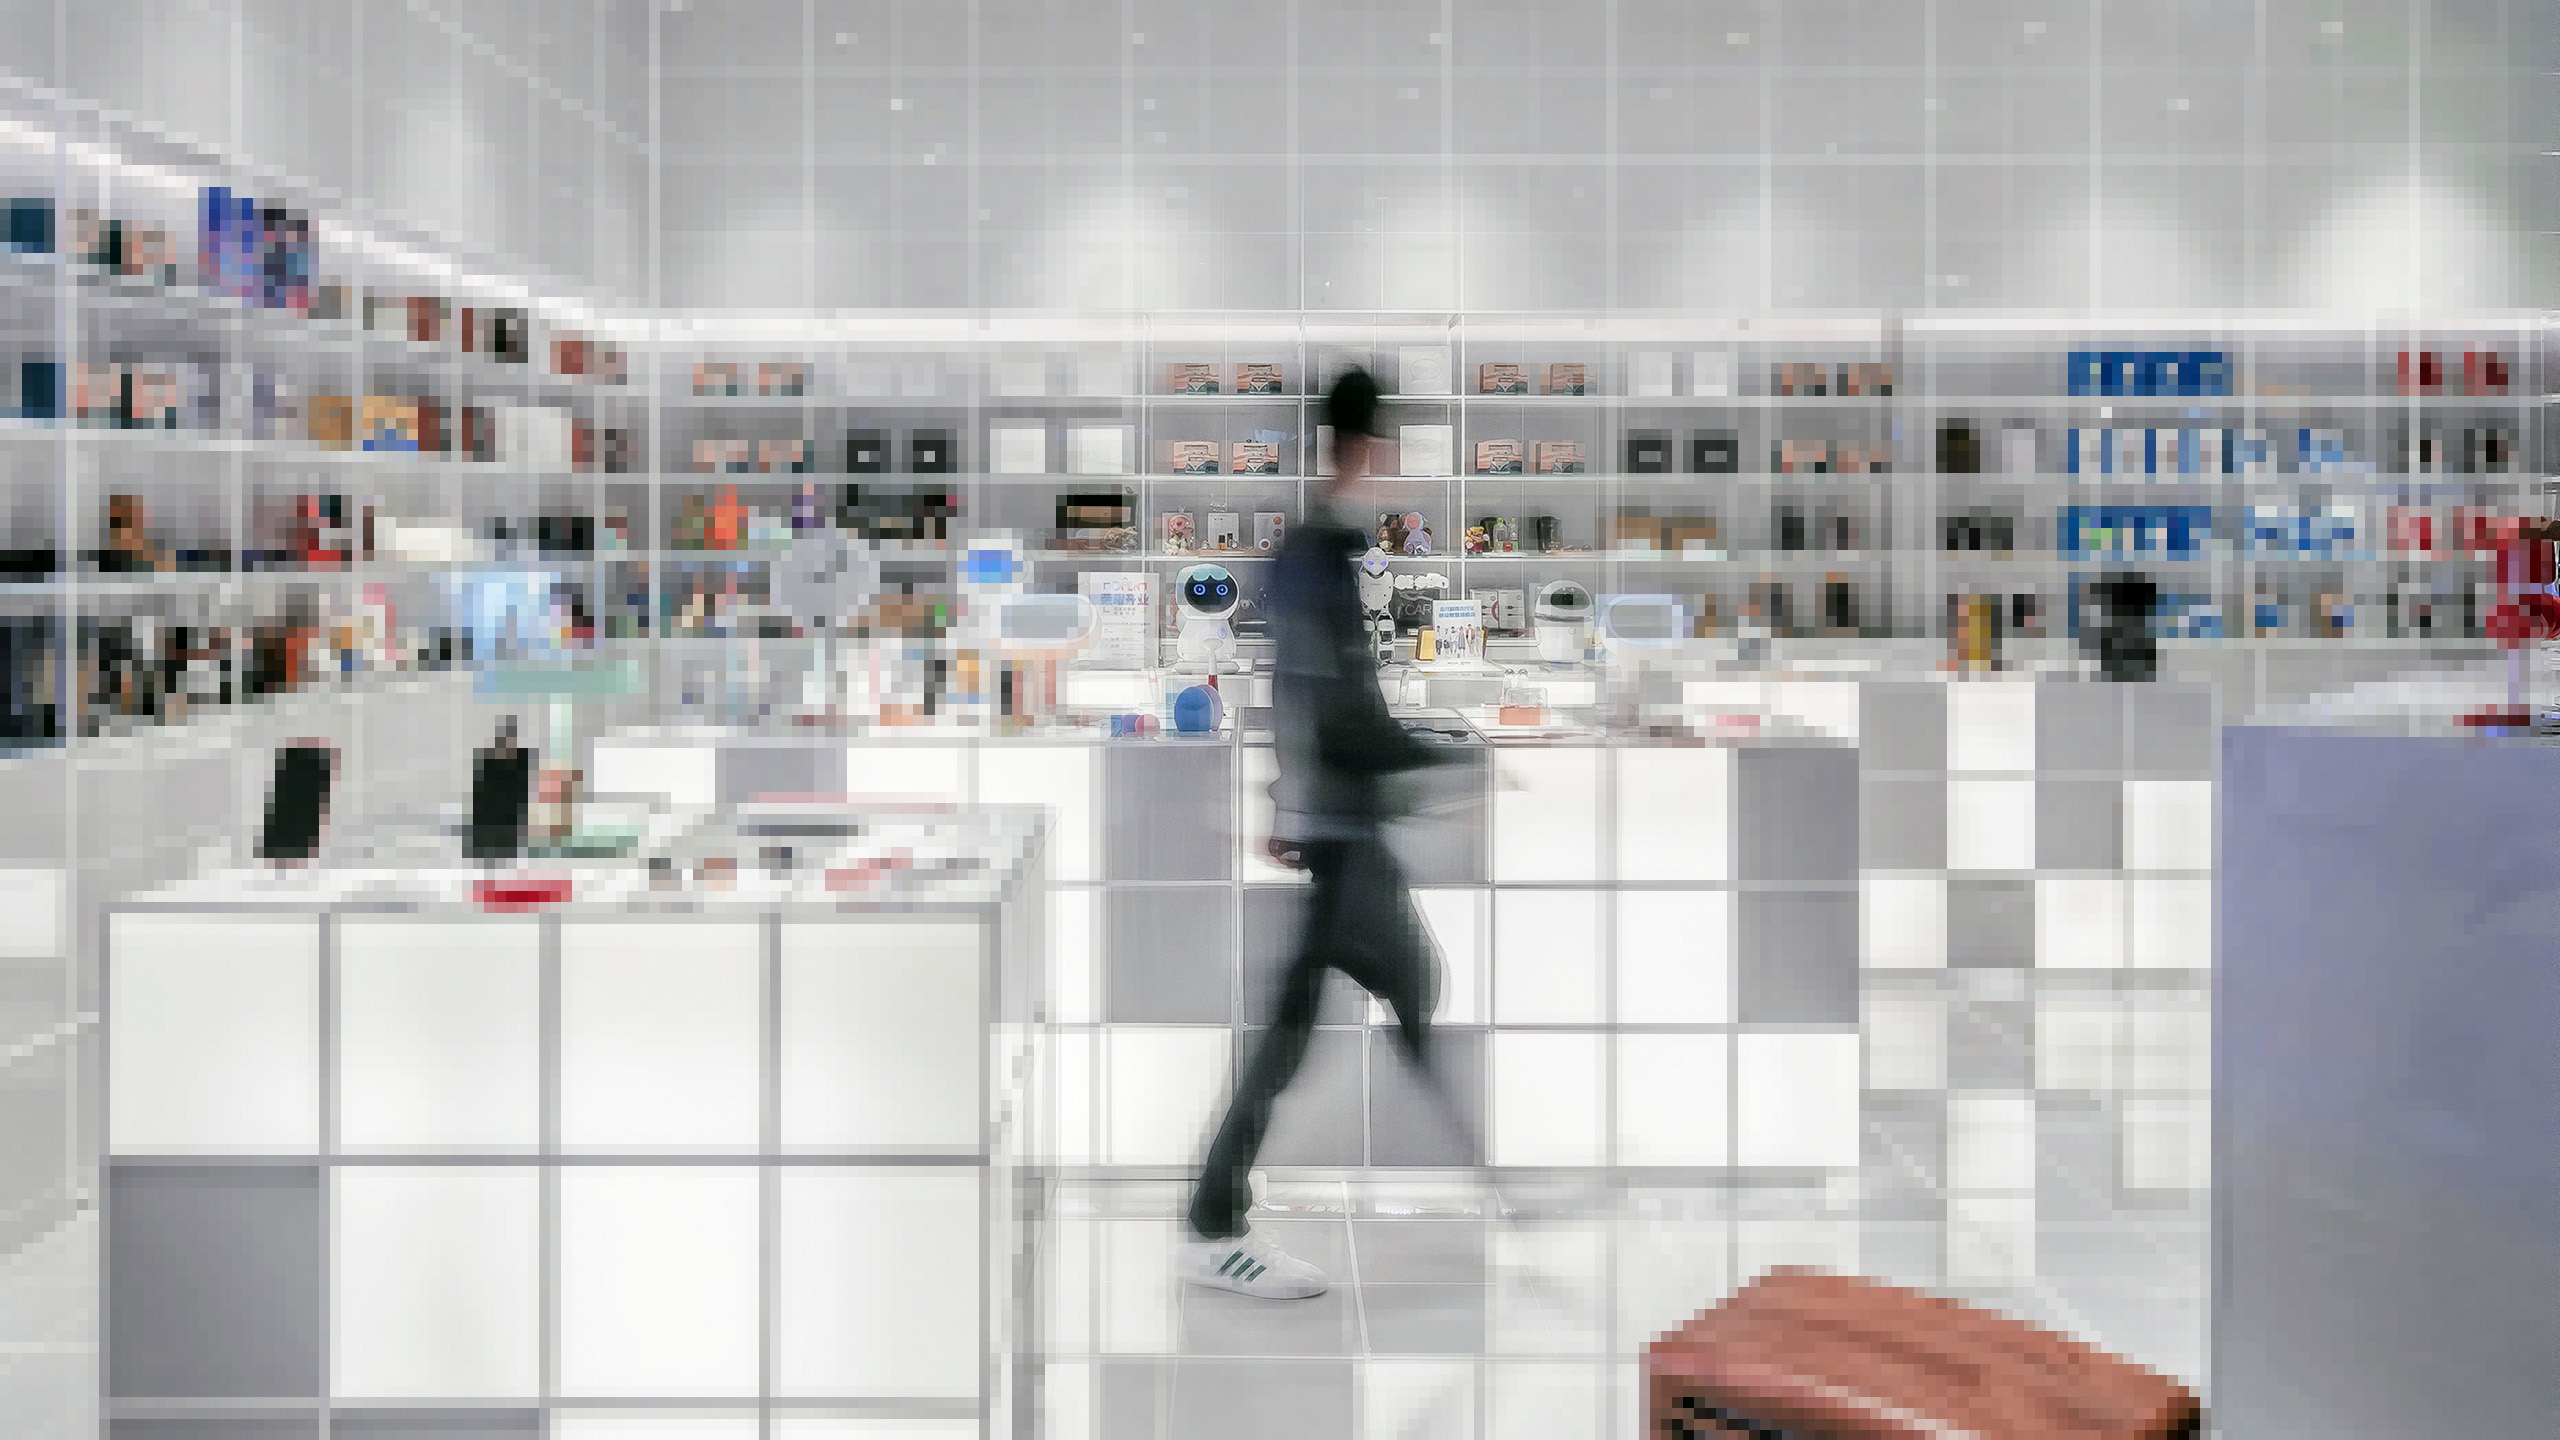 A person is walking around a modern store